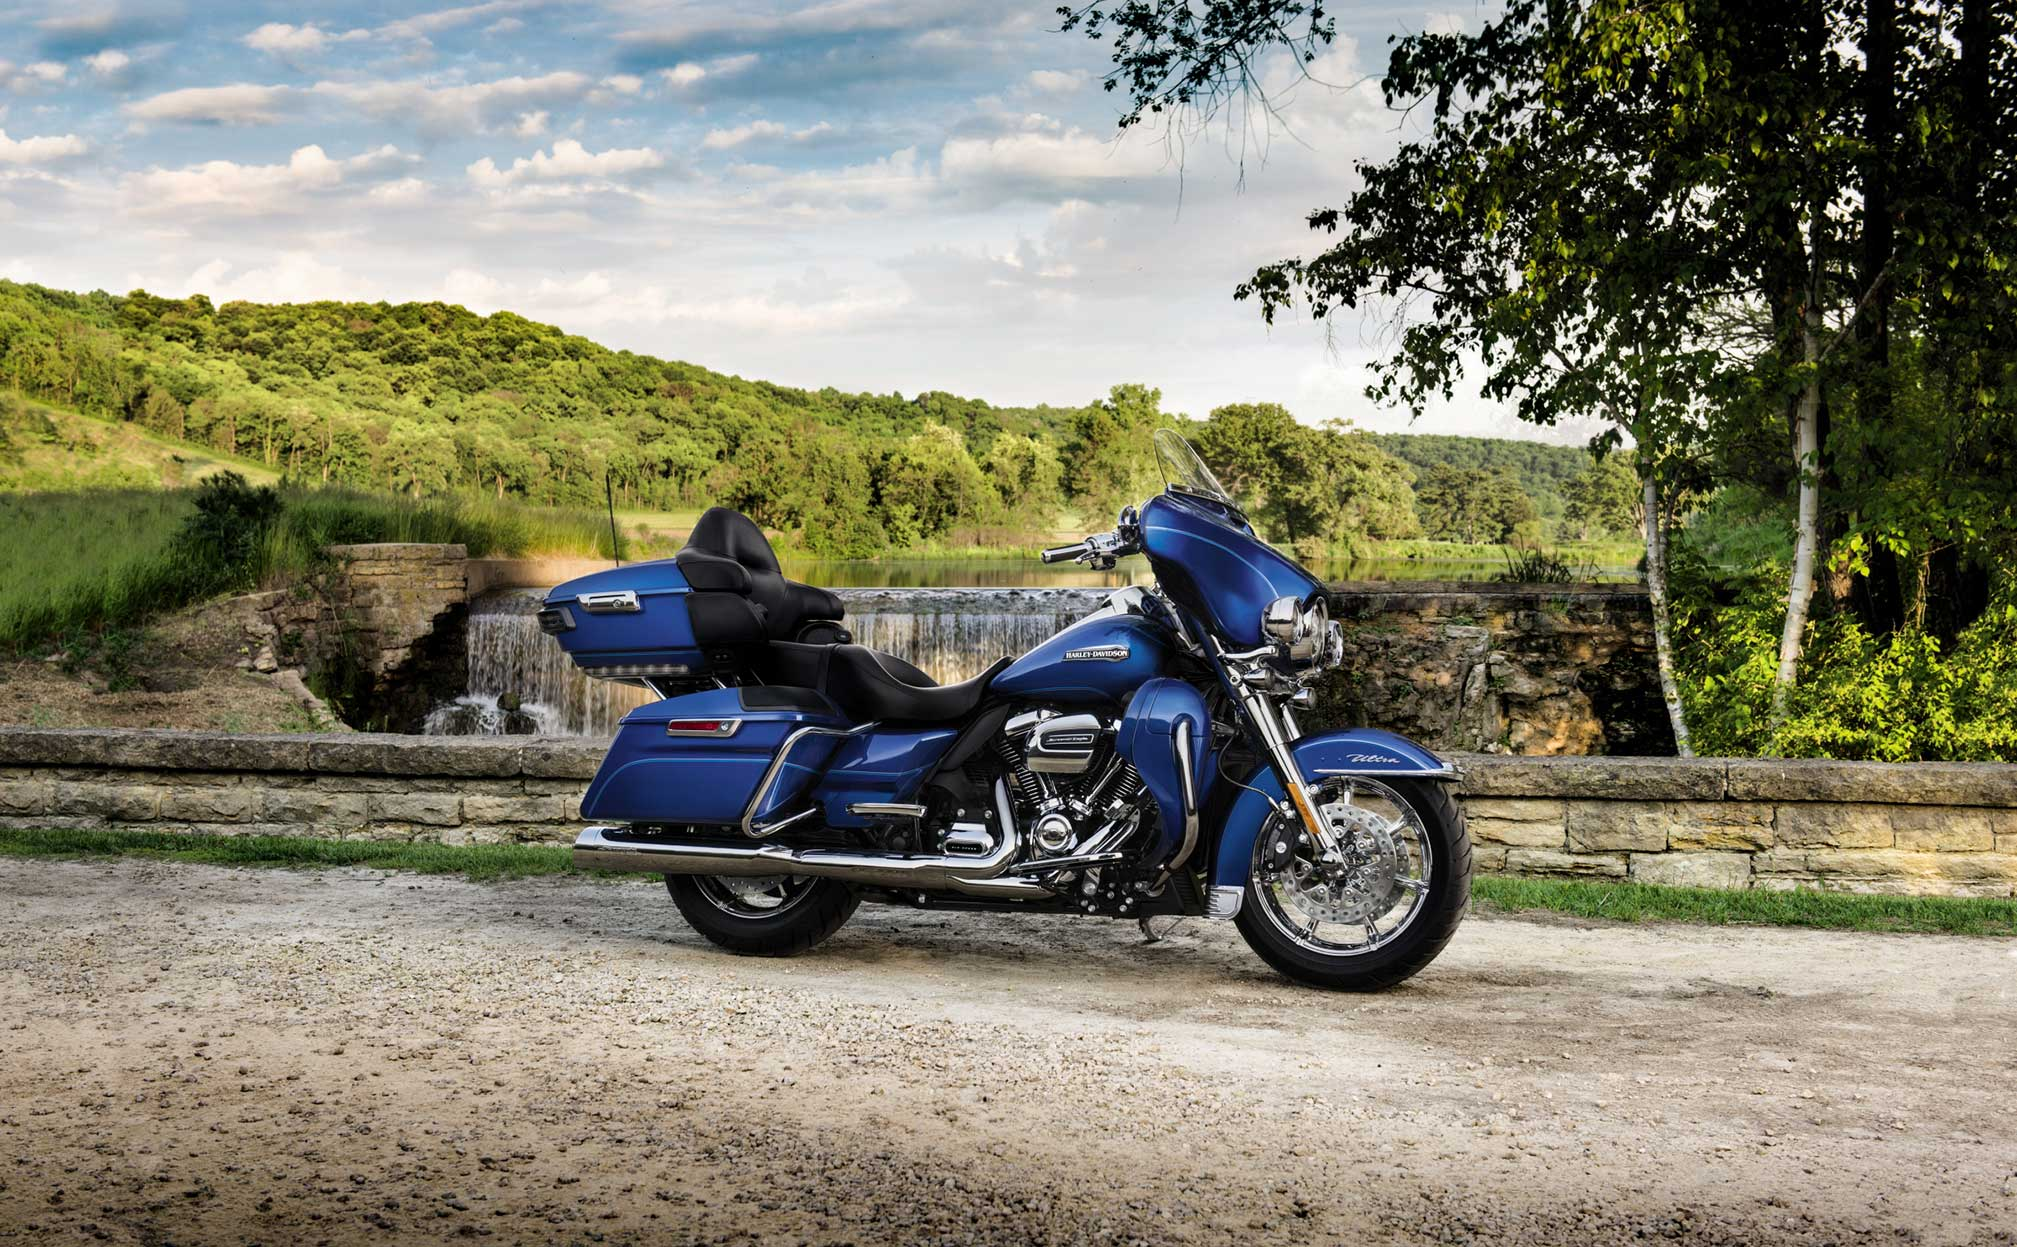 2017x1247 - Harley-Davidson Electra Glide Ultra Classic Wallpapers 21